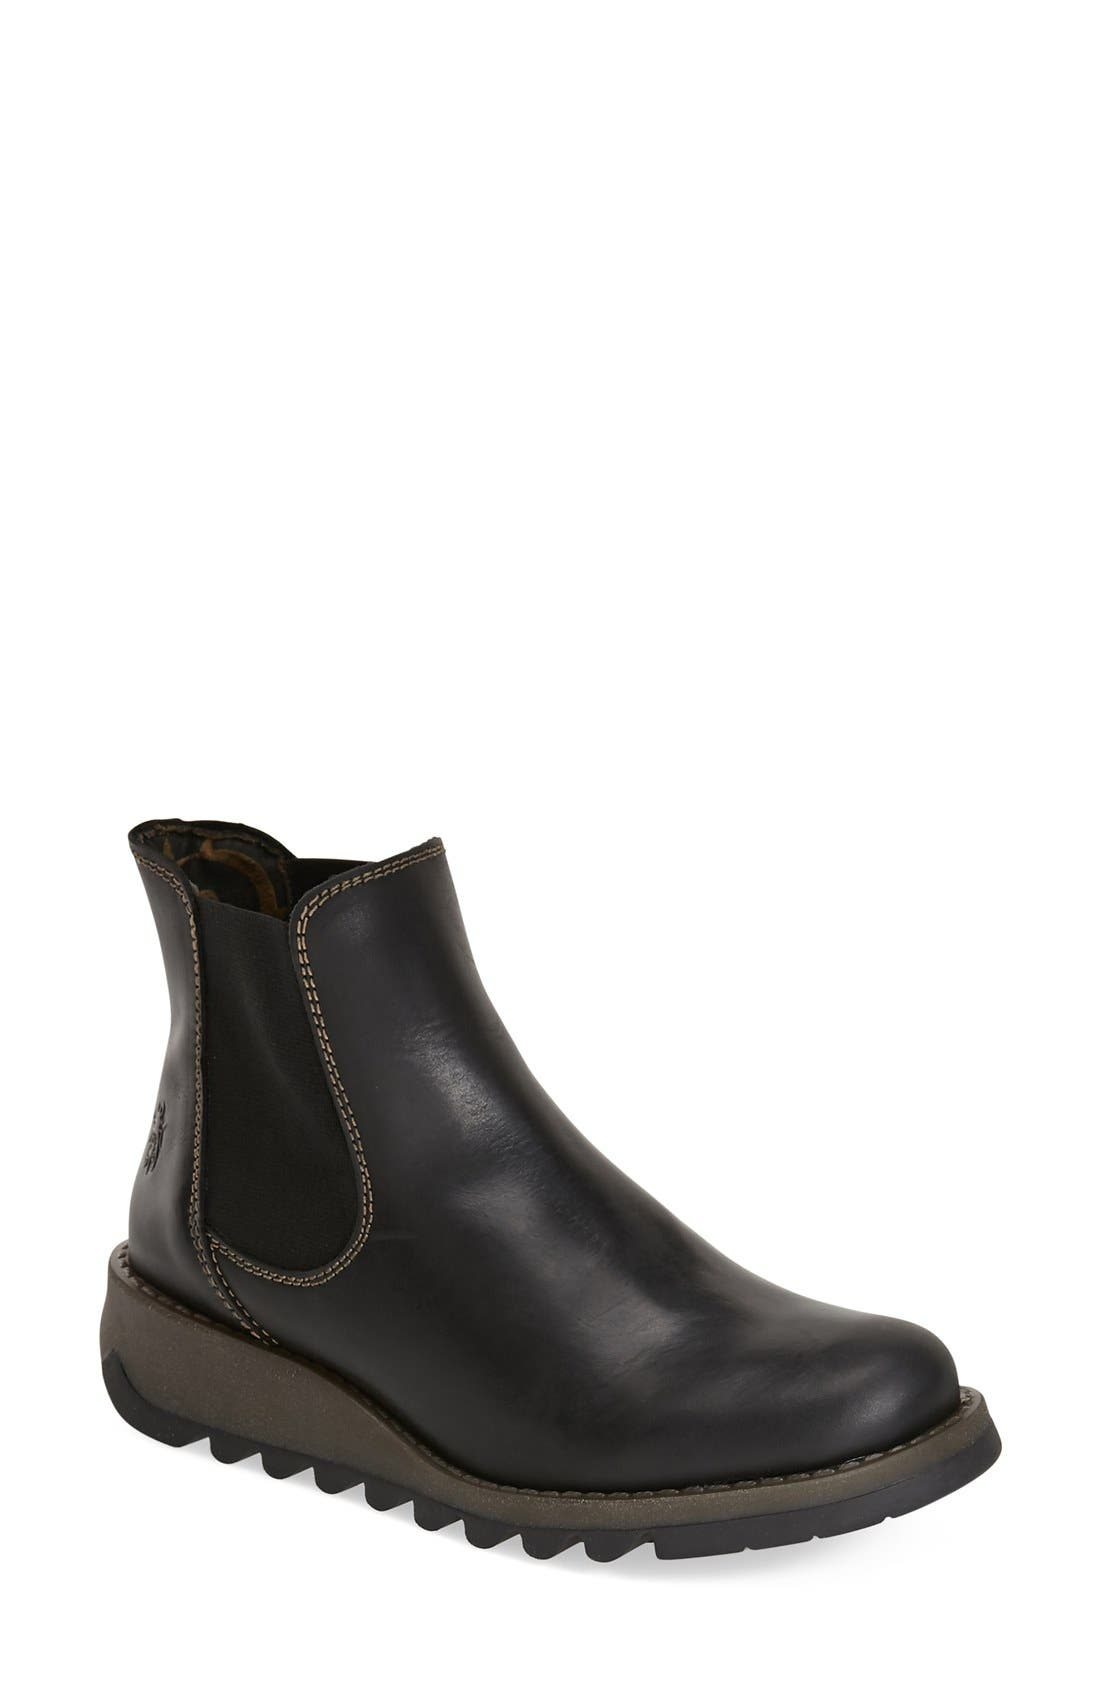 'Salv' Chelsea Boot, Main, color, 001